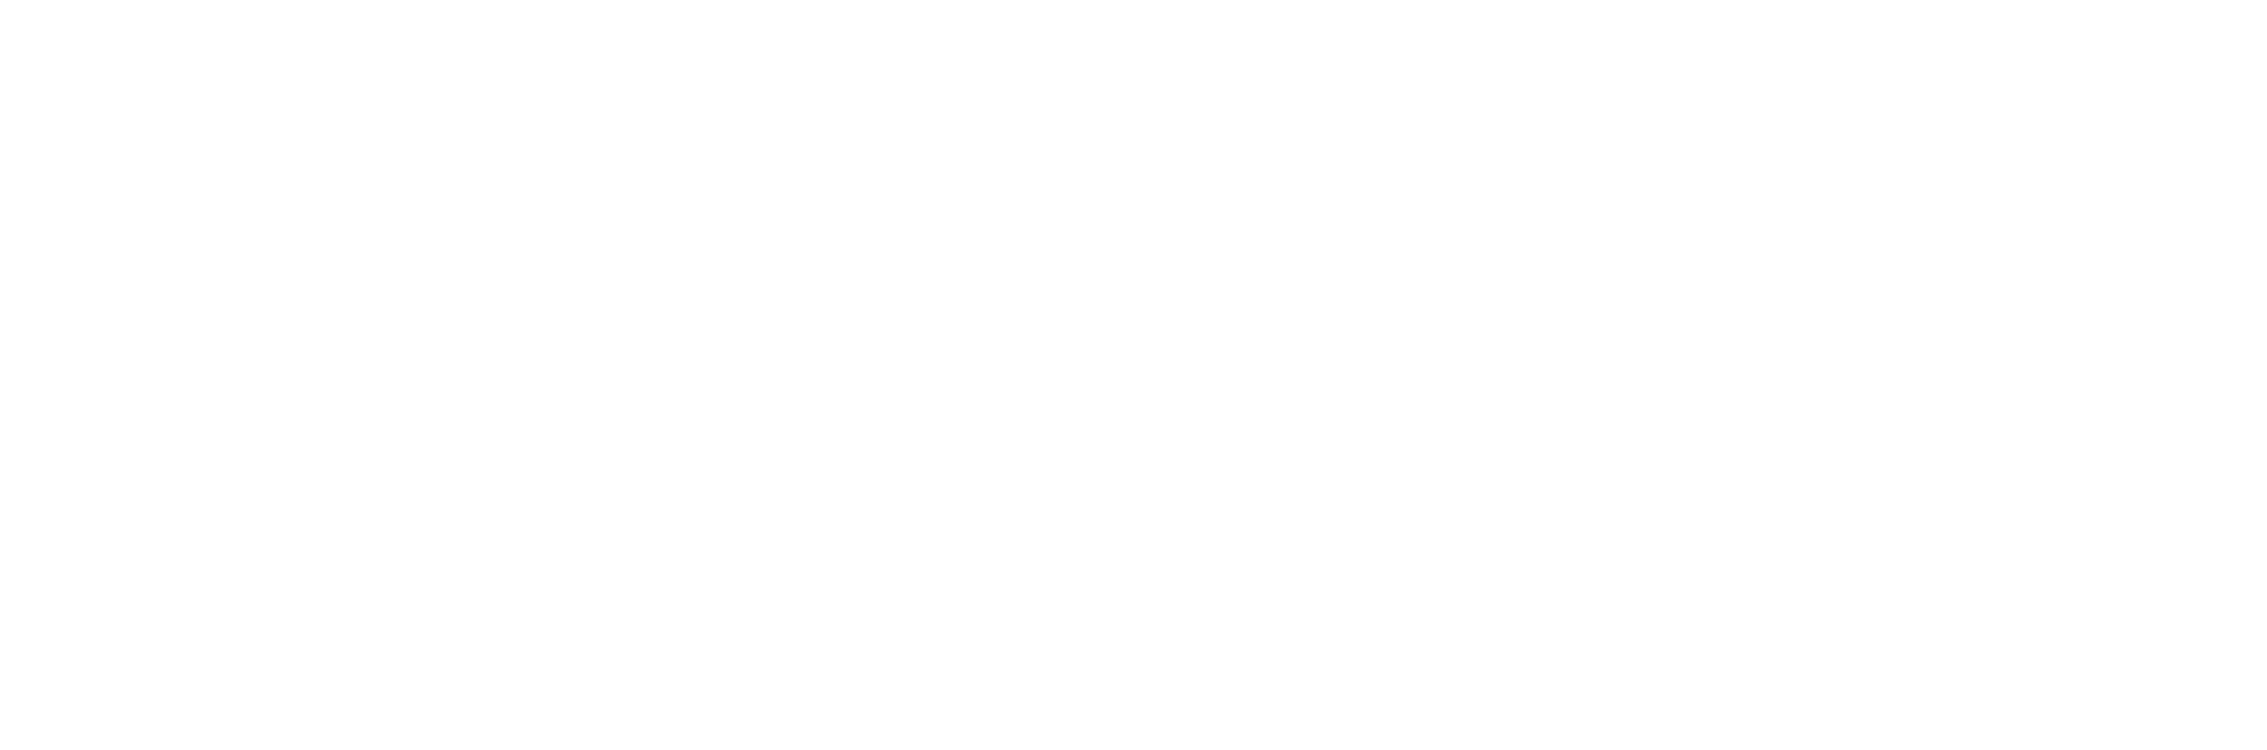 The Times-Journal